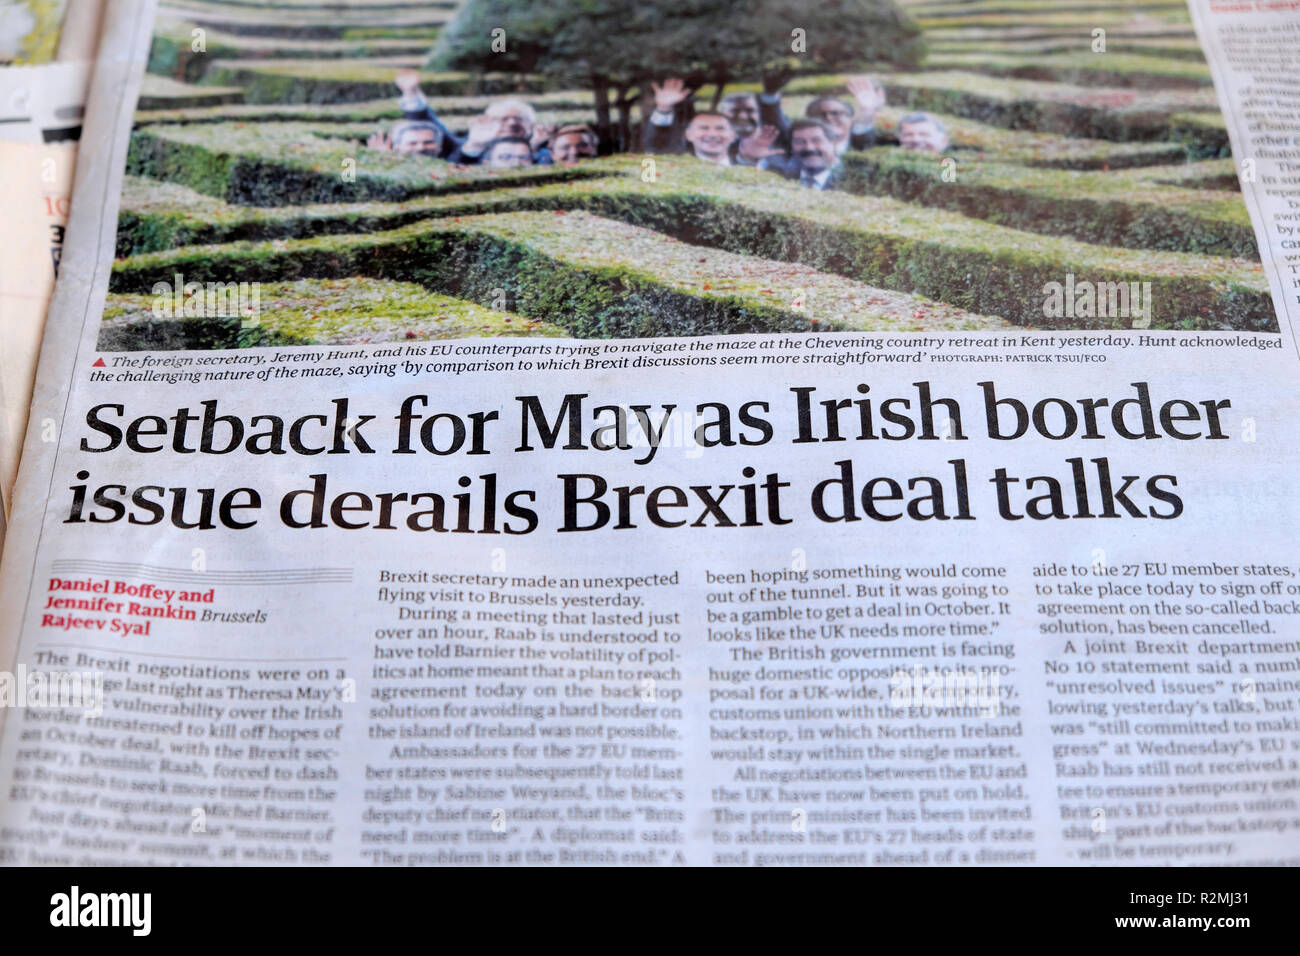 Guardian newspaper headline front page 'Setback for May as Irish border issue derails Brexit deal talks'   London England UK   15 October 2018 - Stock Image